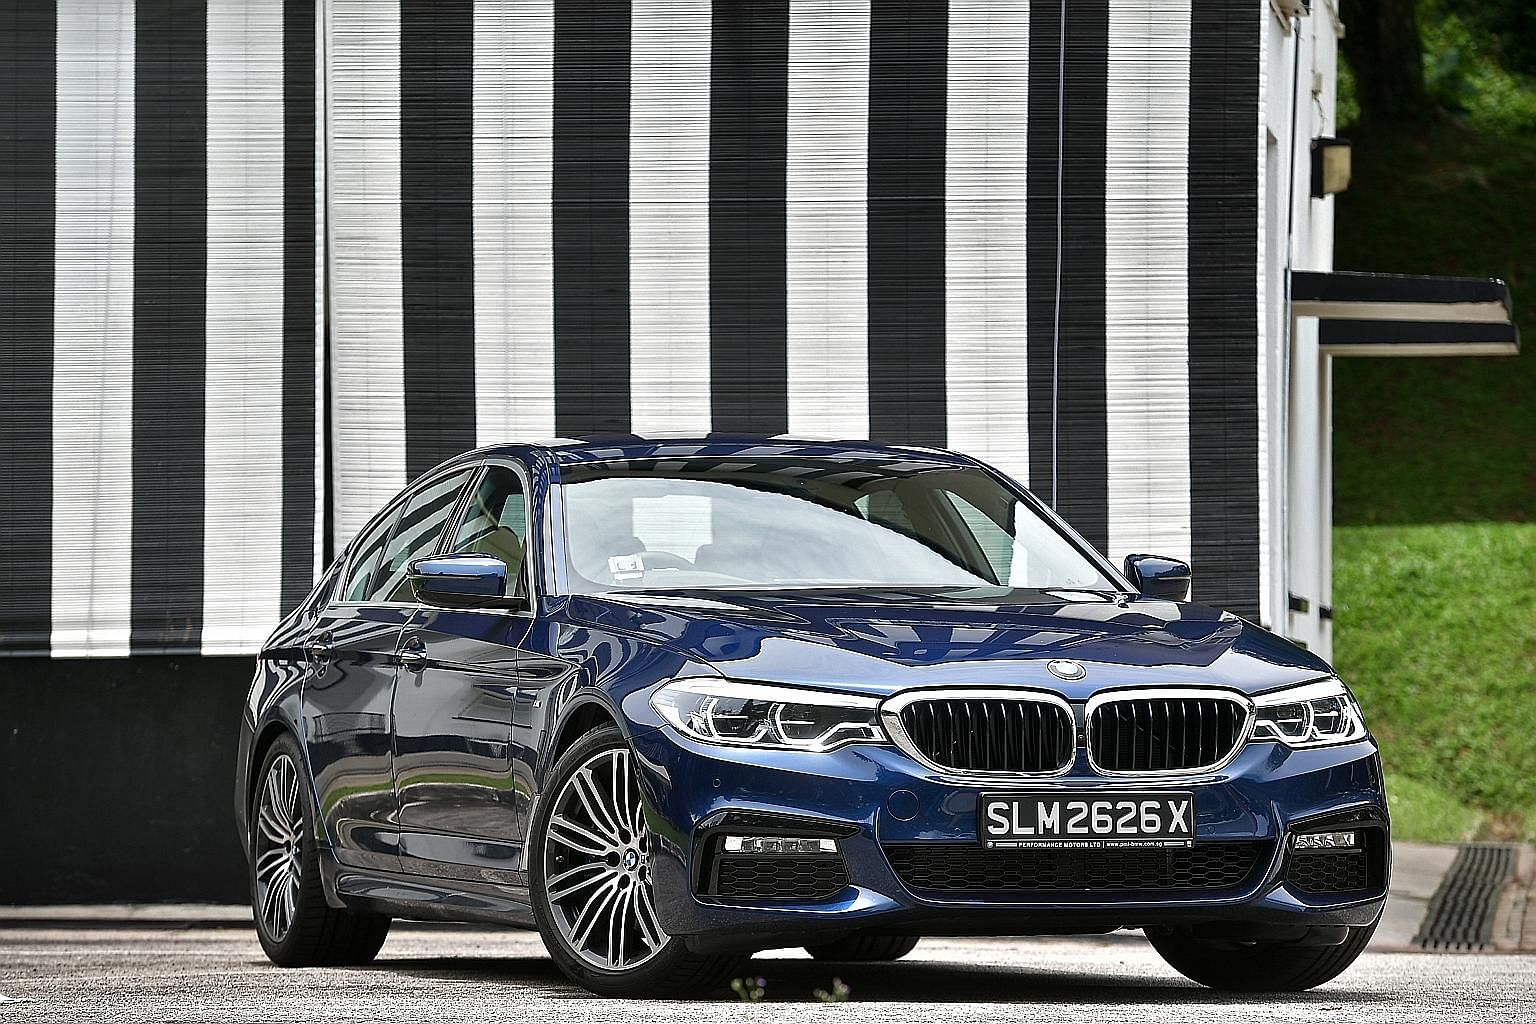 The BMW 530i's steering is effortlessly responsive and its chassis reacts to changes in terrain and dynamic forces with finesse.